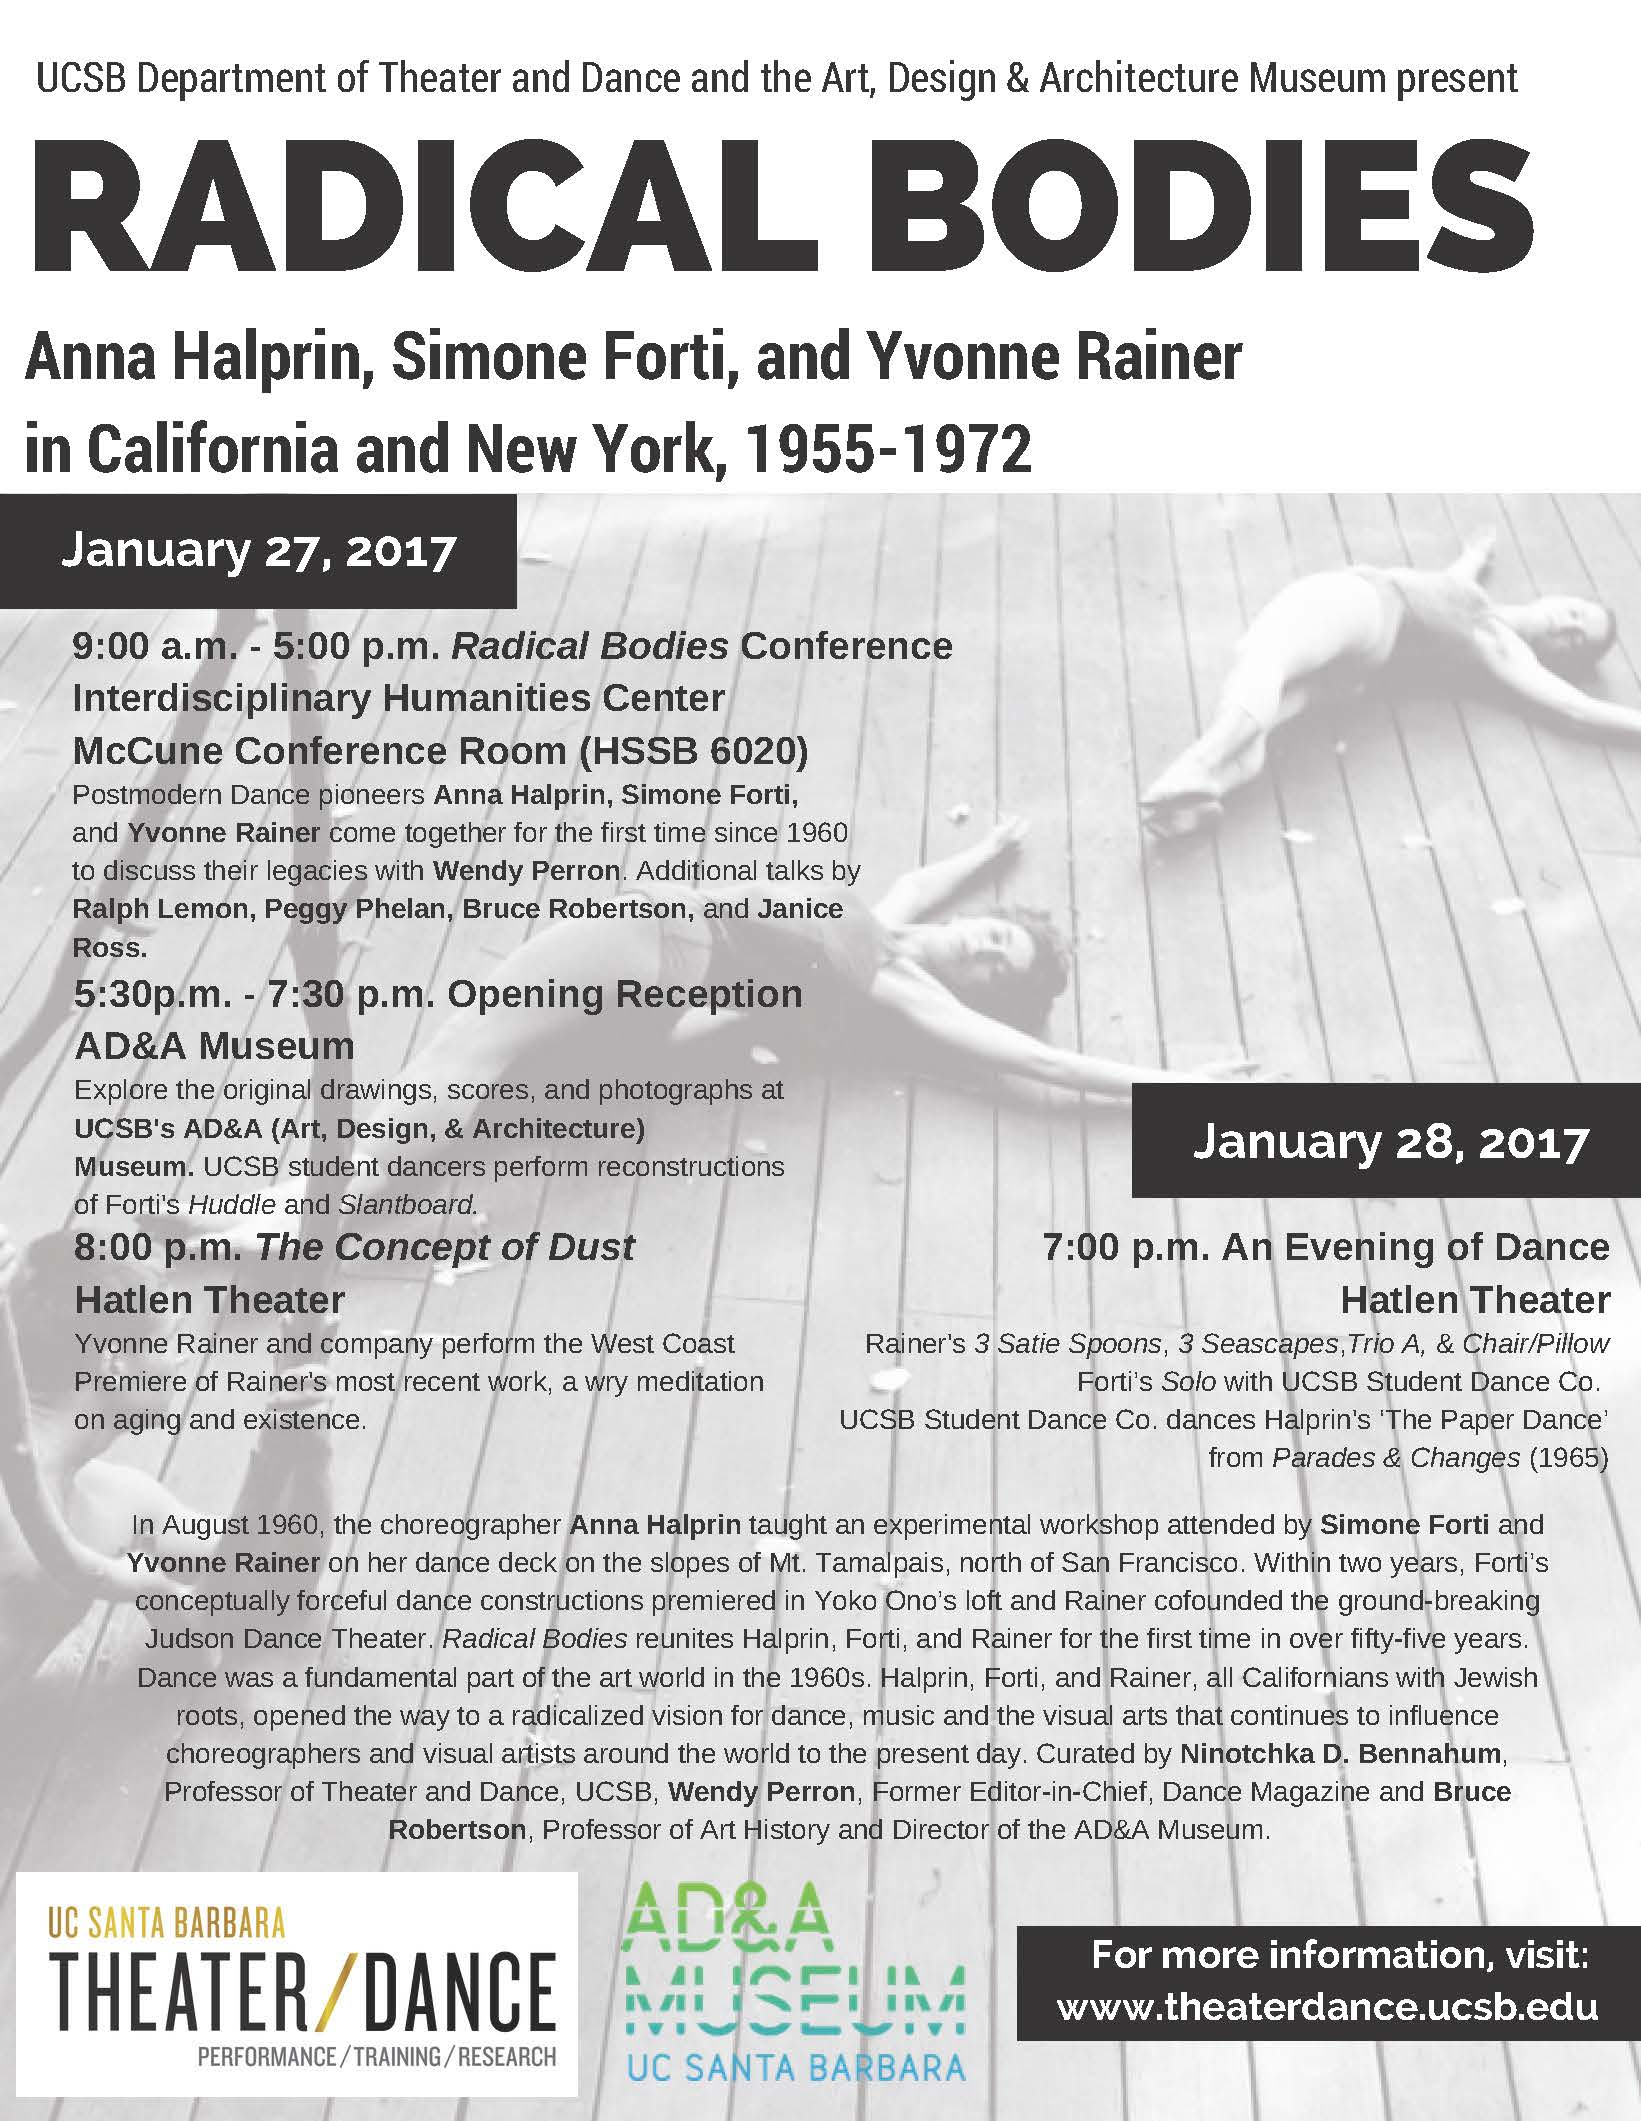 CONFERENCE: Radical Bodies: Anna Halprin; Simone Forti; Yvonne Rainer in CA and NY 1955 – 1972